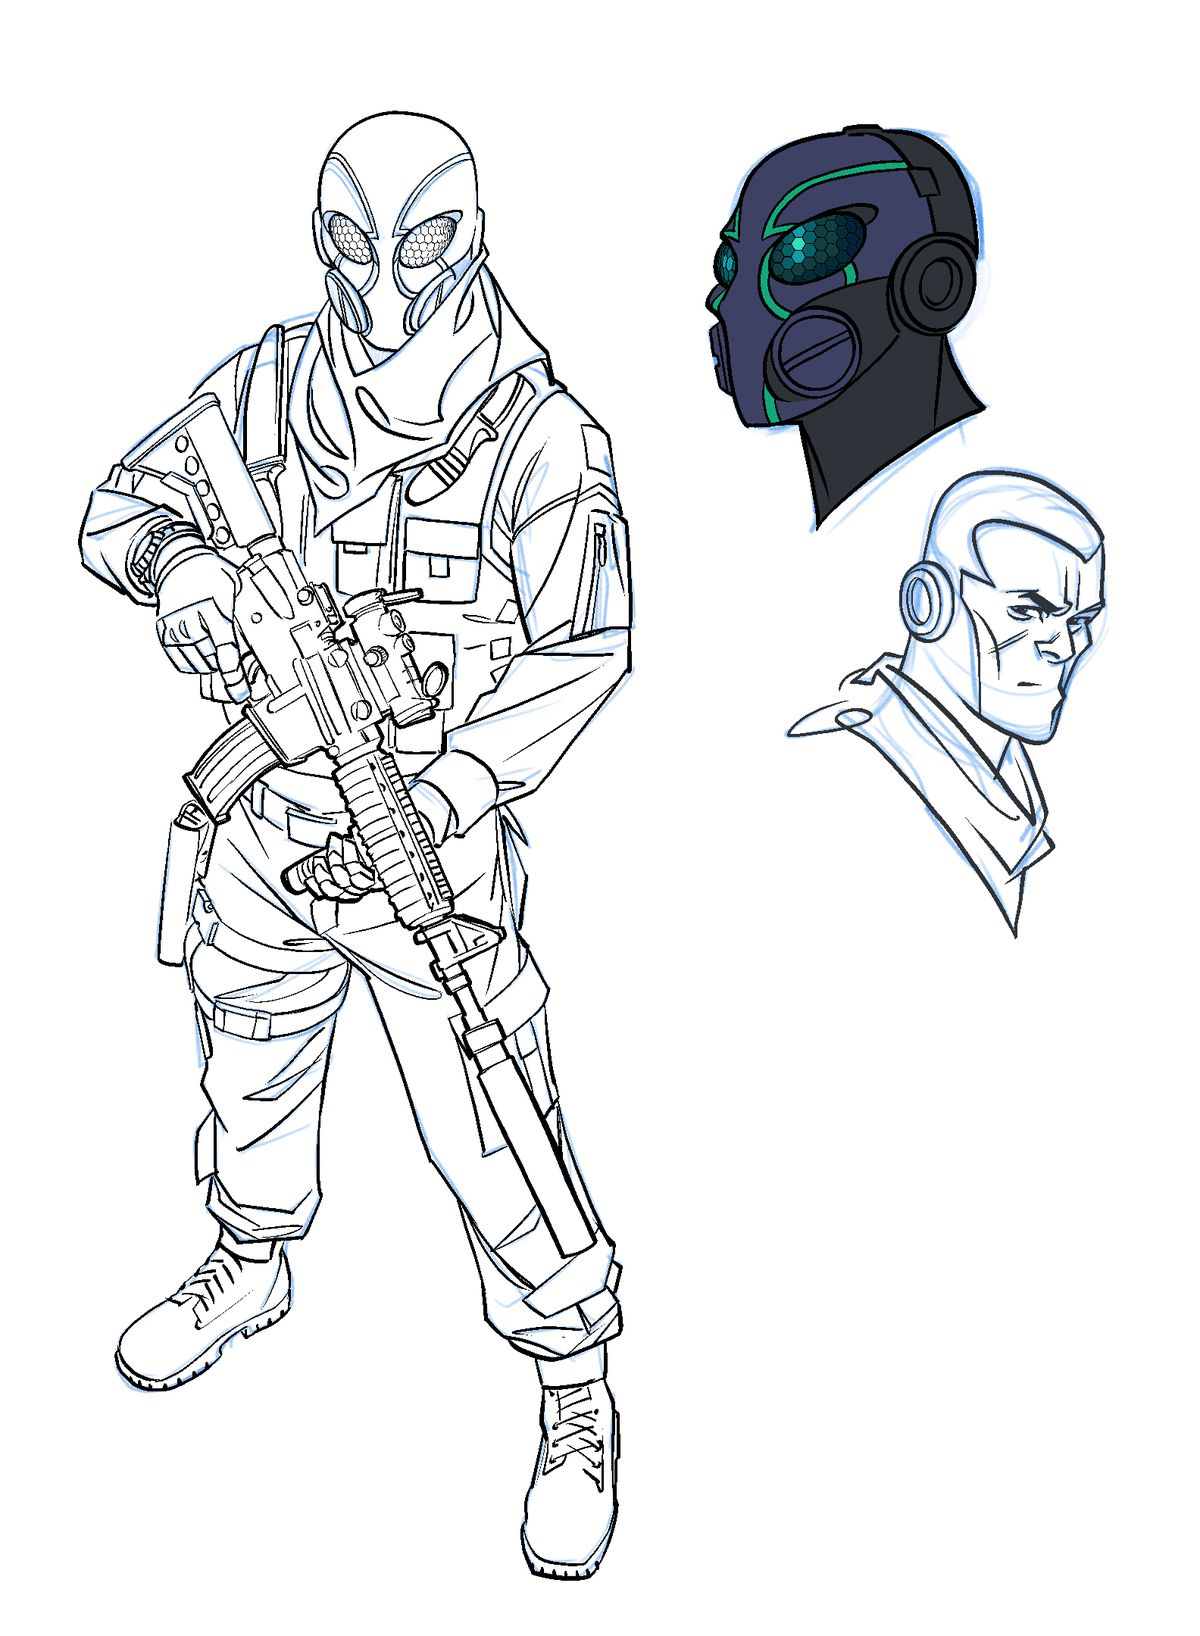 An equipped special operative in a strange full face mask, carrying a sniper rifle, in concept art from Thomas River.